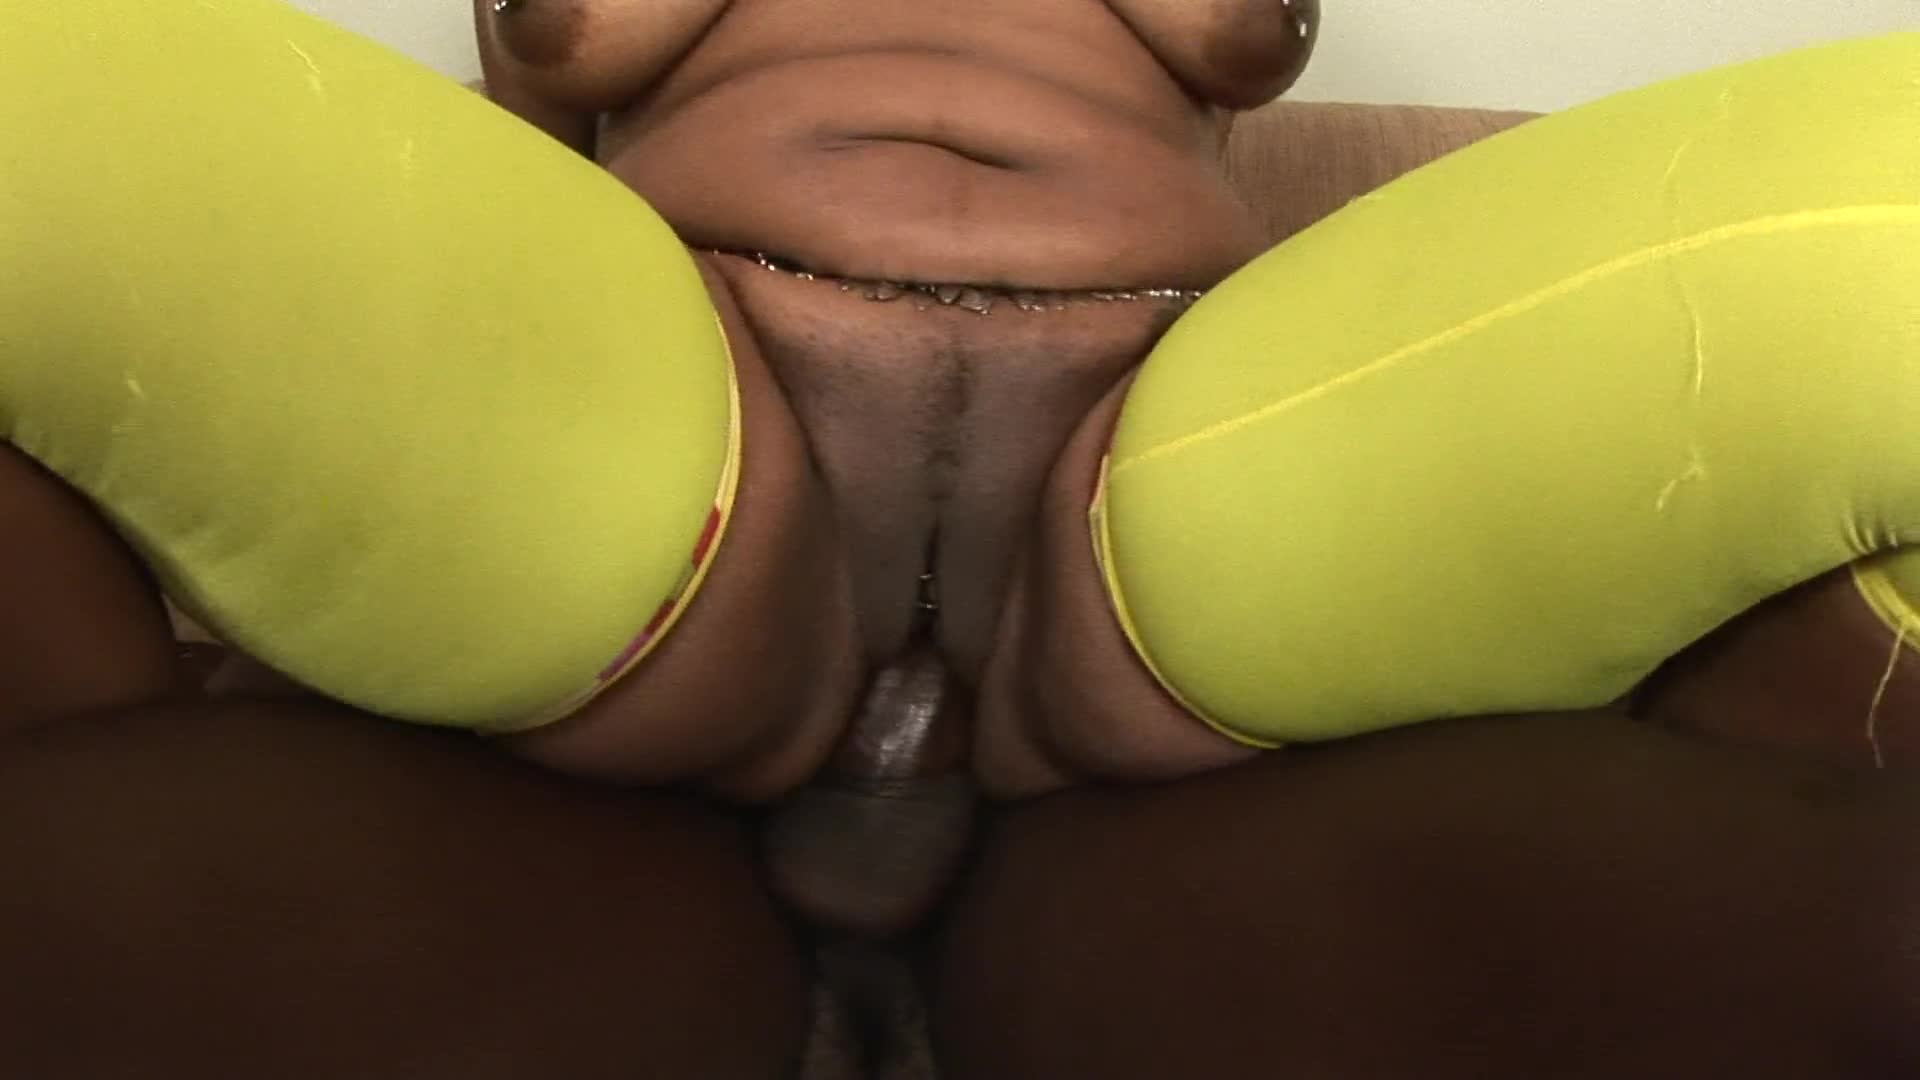 Chubby Black Girl Big Ass